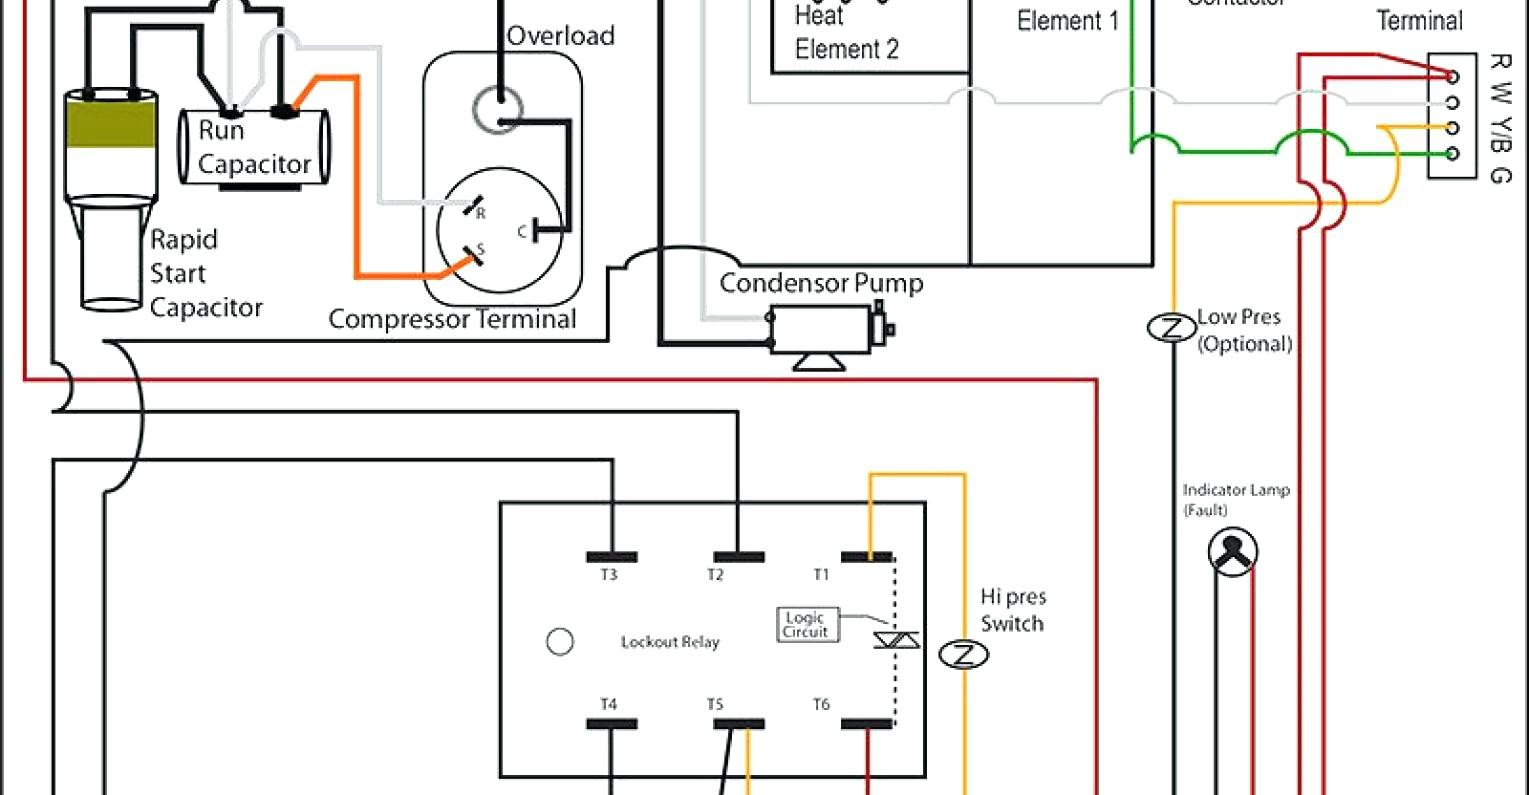 hight resolution of 86 lockout relay wiring diagram wiring library relay schematic full size of central air conditioner